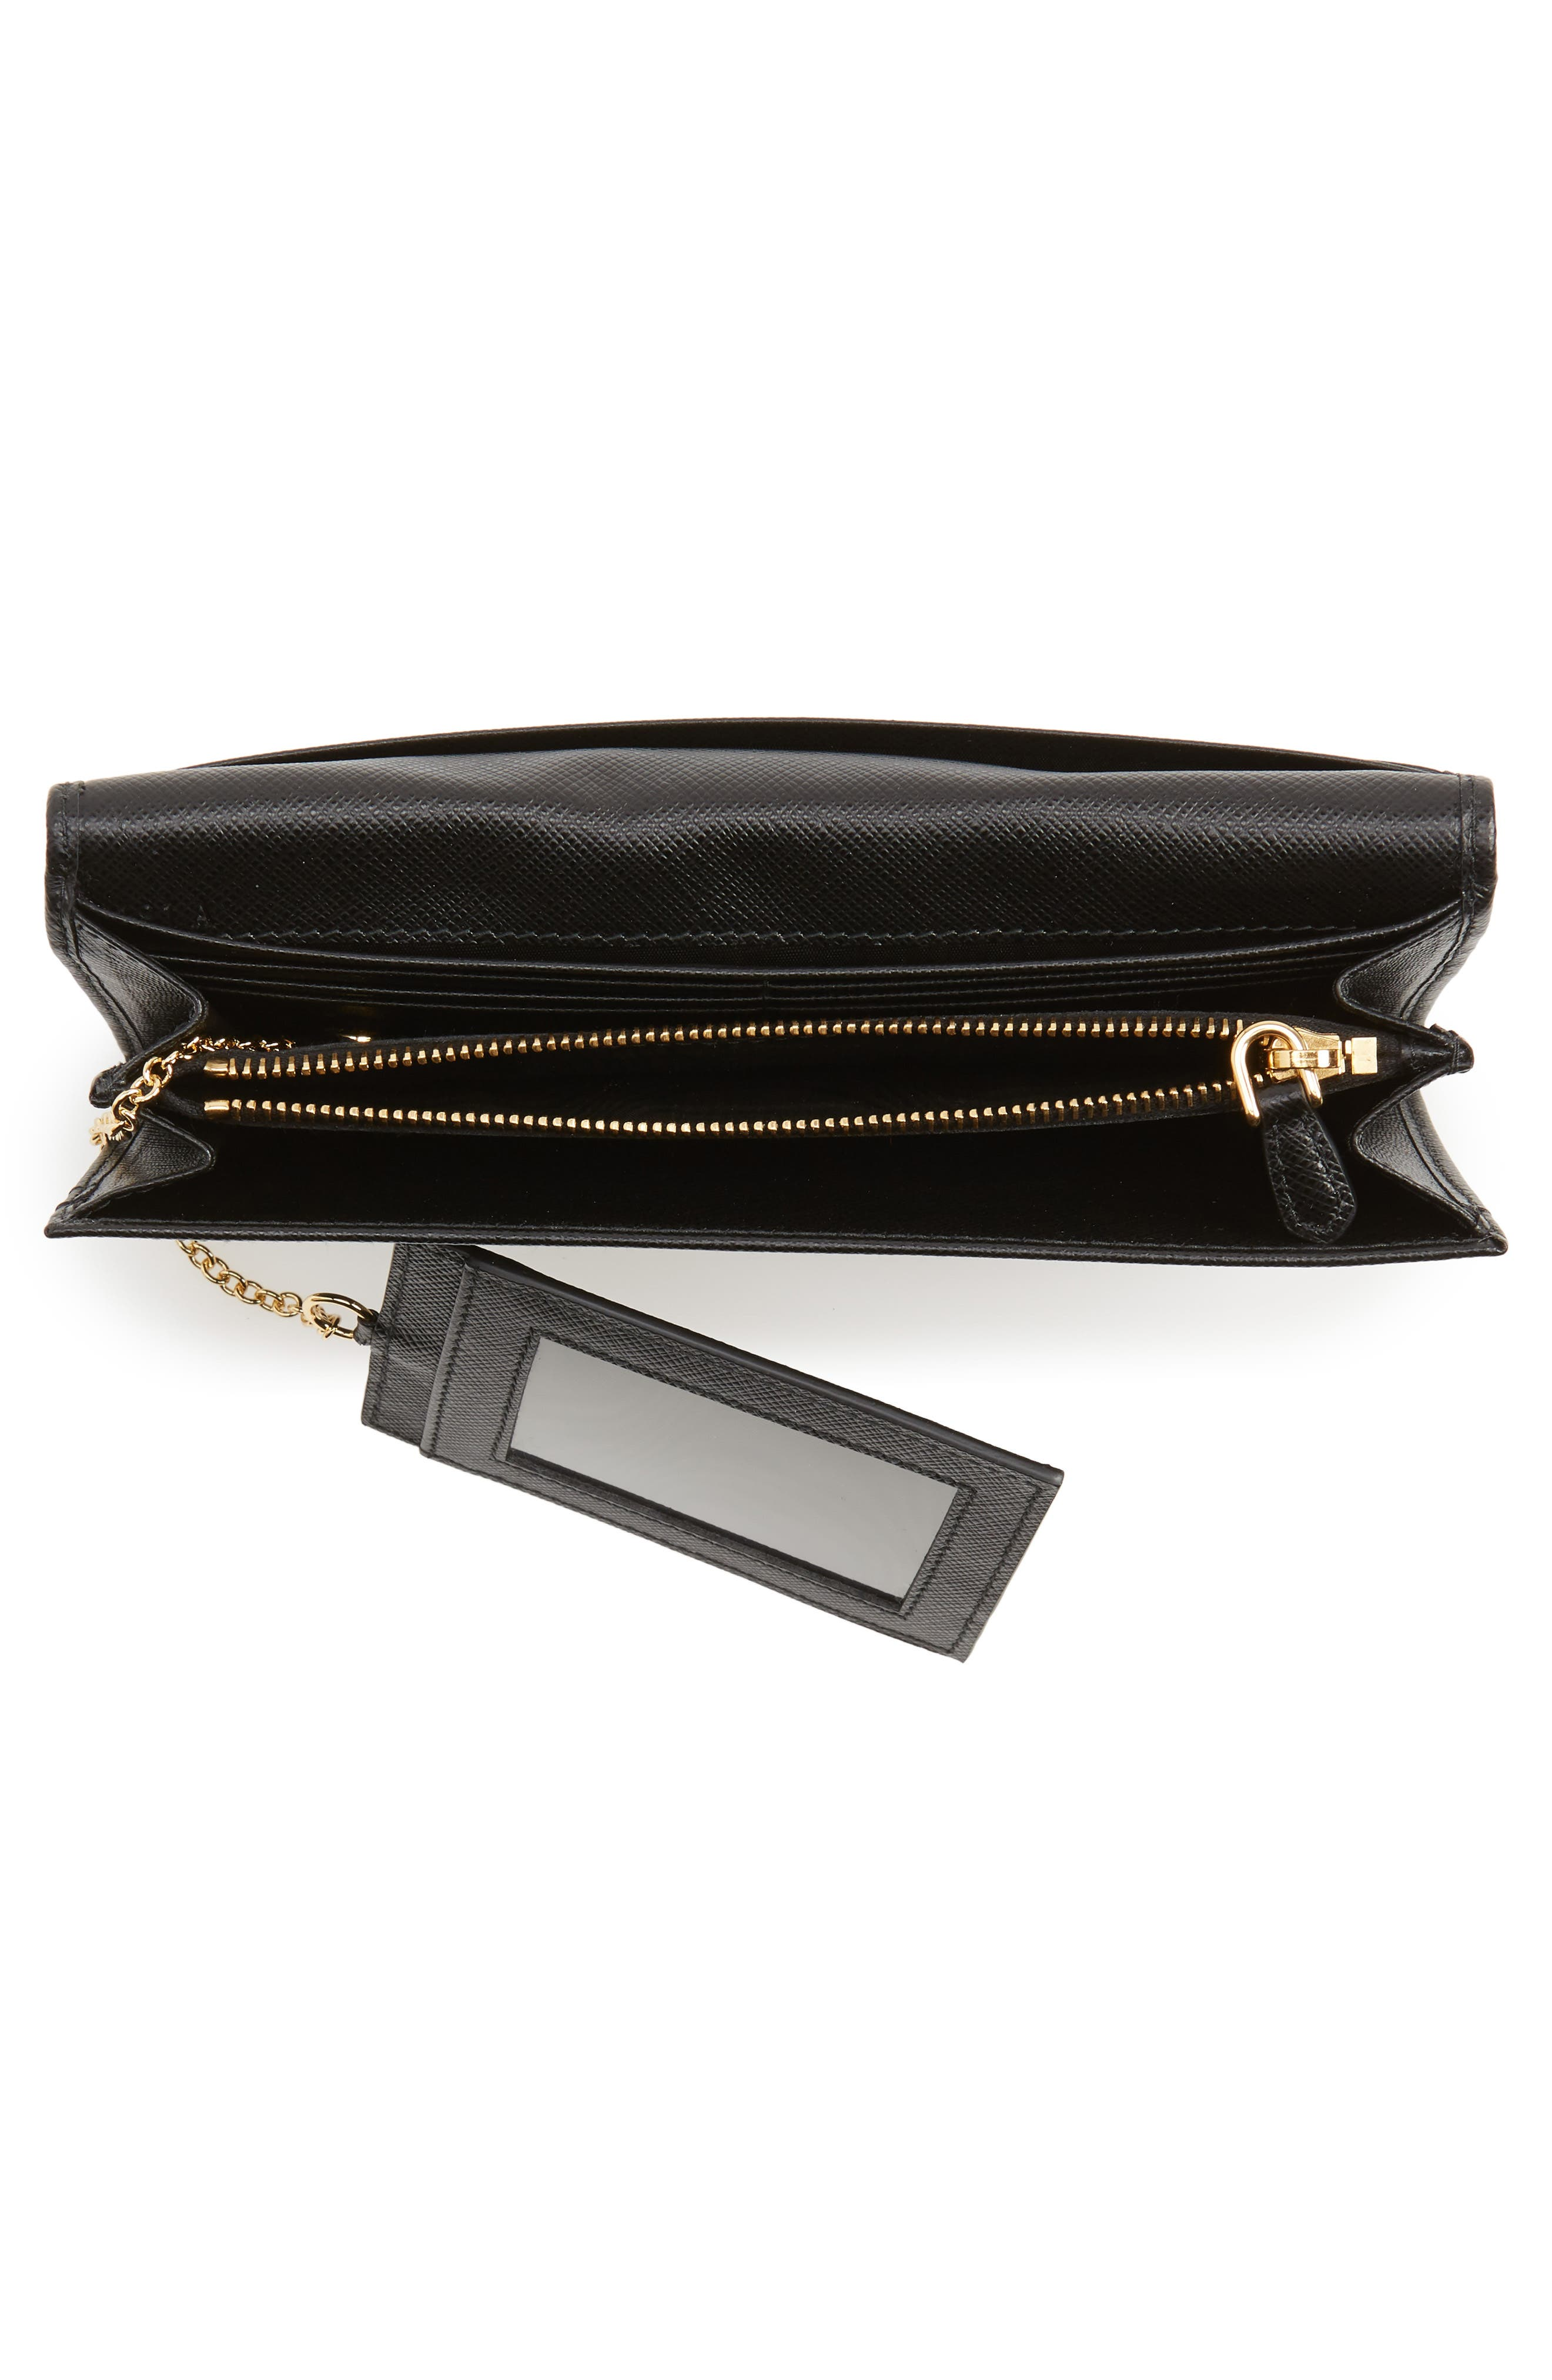 Metal Bar Saffiano Leather Continental Wallet,                             Alternate thumbnail 4, color,                             001